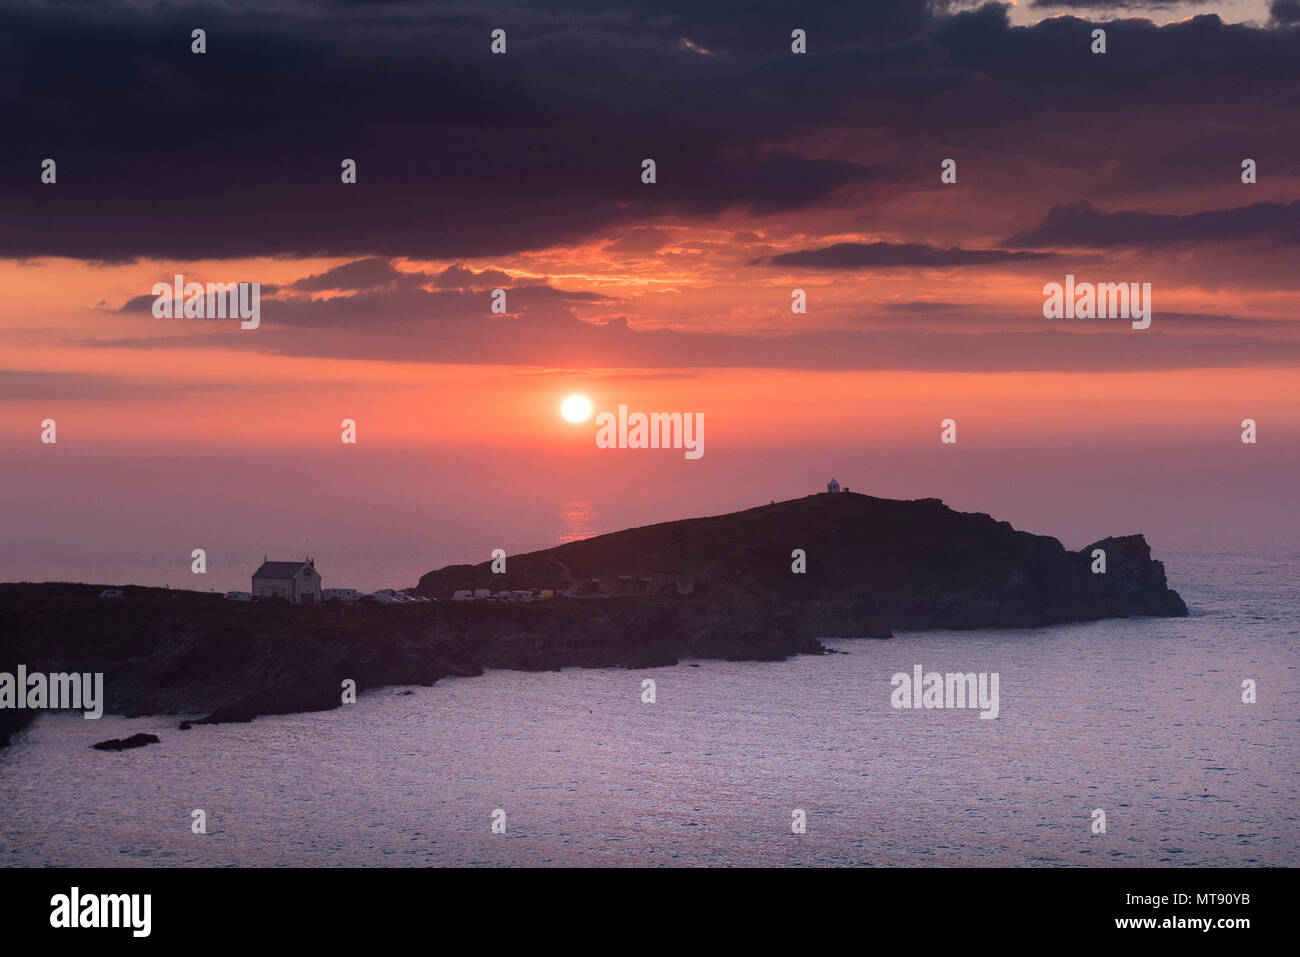 Newquay, Cornwall, UK. 28th May, 2018. UK Weather. A glorious sunset over Towan Head to end a day of wonderful summer weather for Newquay, Cornwall. Gordon Scammell/Alamy Live News Stock Photo